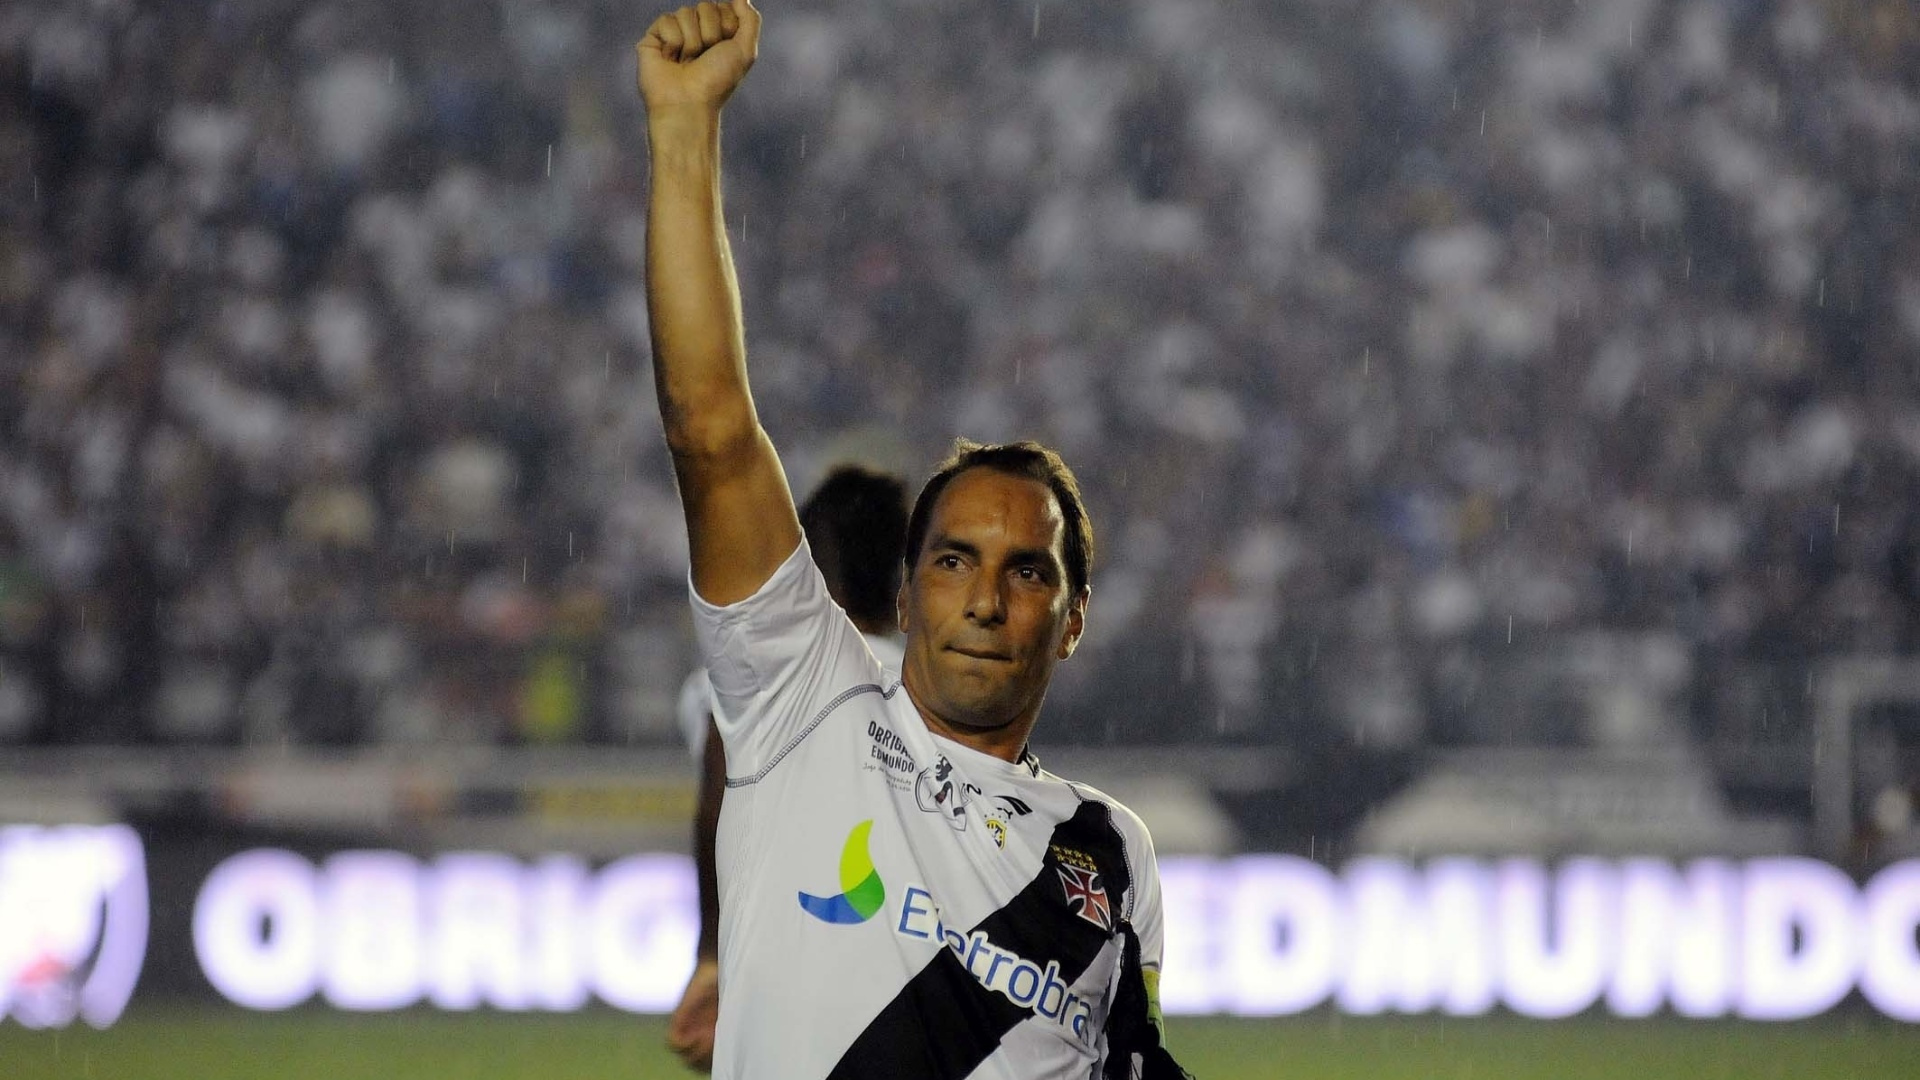 Edmundo acena para a torcida do Vasco antes de seu jogo de despedida, contra o Barcelona (EQU)